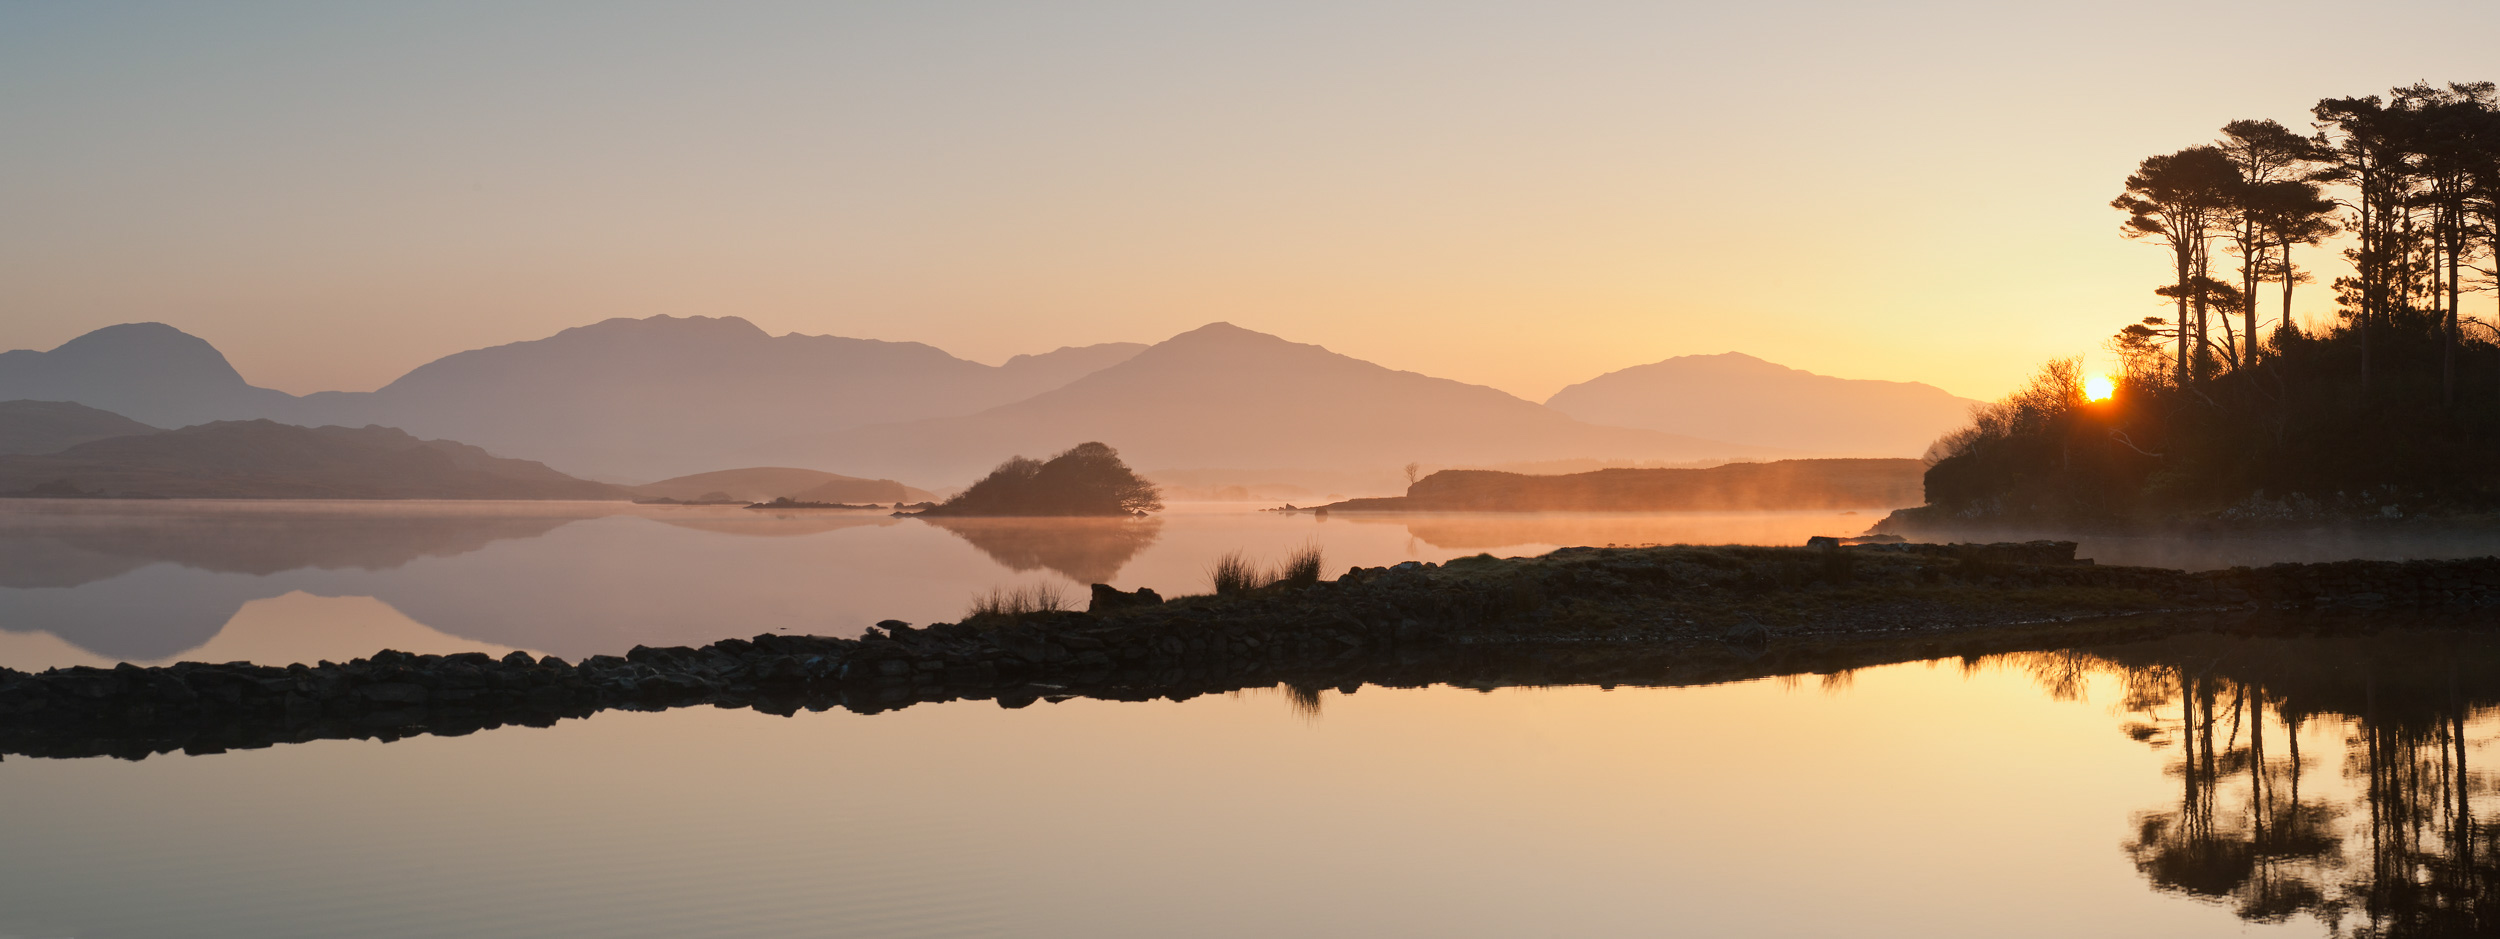 lake-still-dawn-sunrise-landscape-photographer-connemara-ireland-panoramic